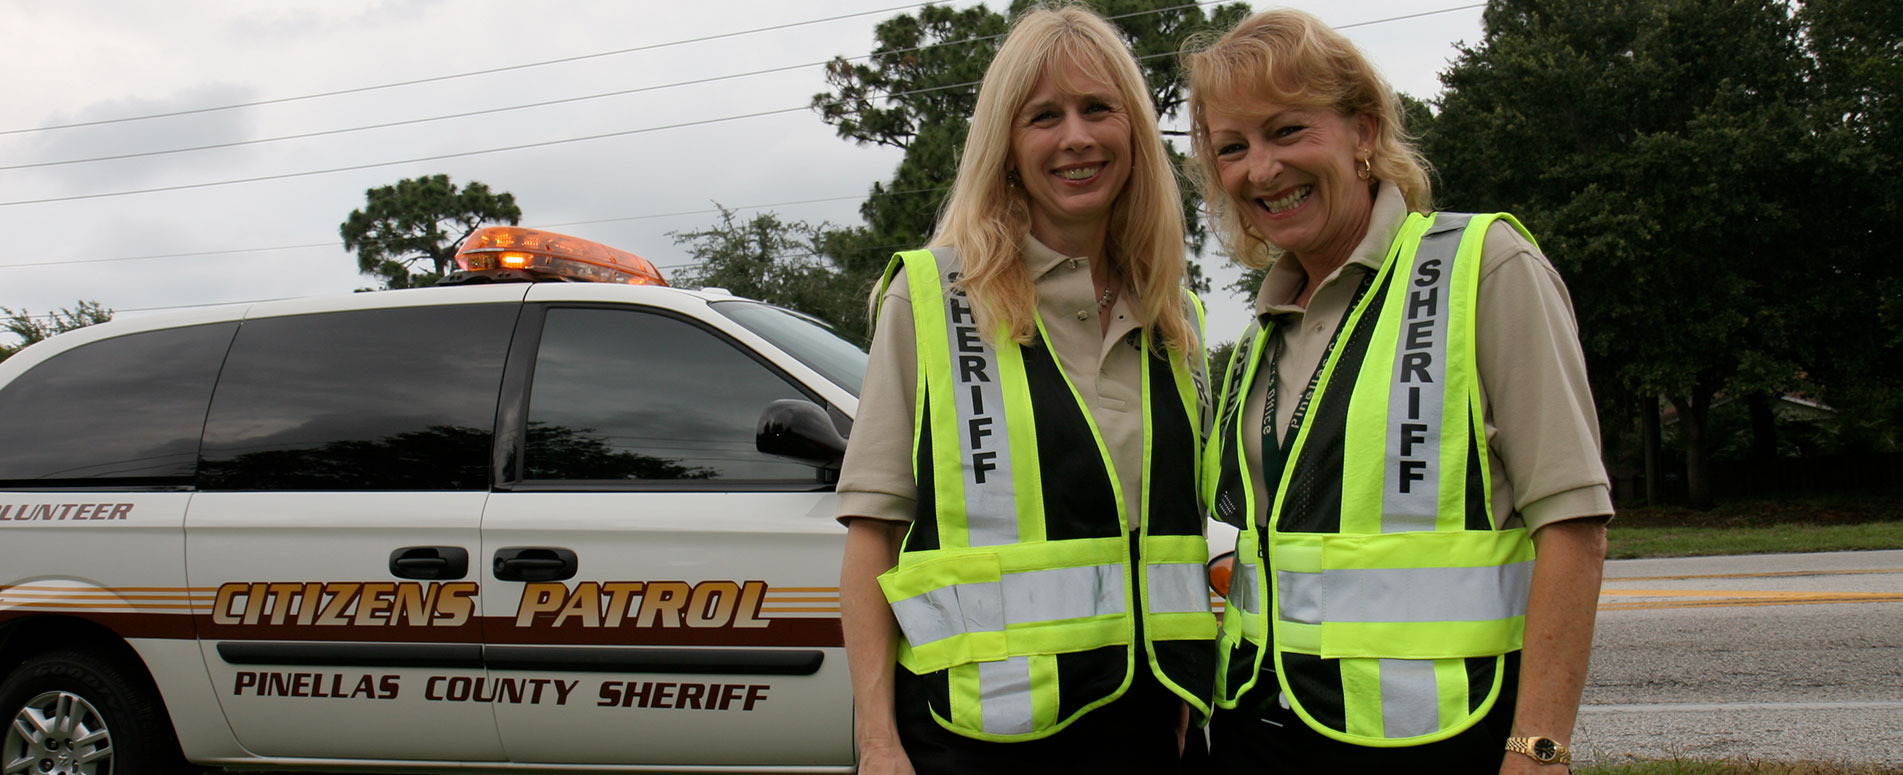 Two women in Sheriff caution vests, standing in front of a white van with the word Volunteer on the side